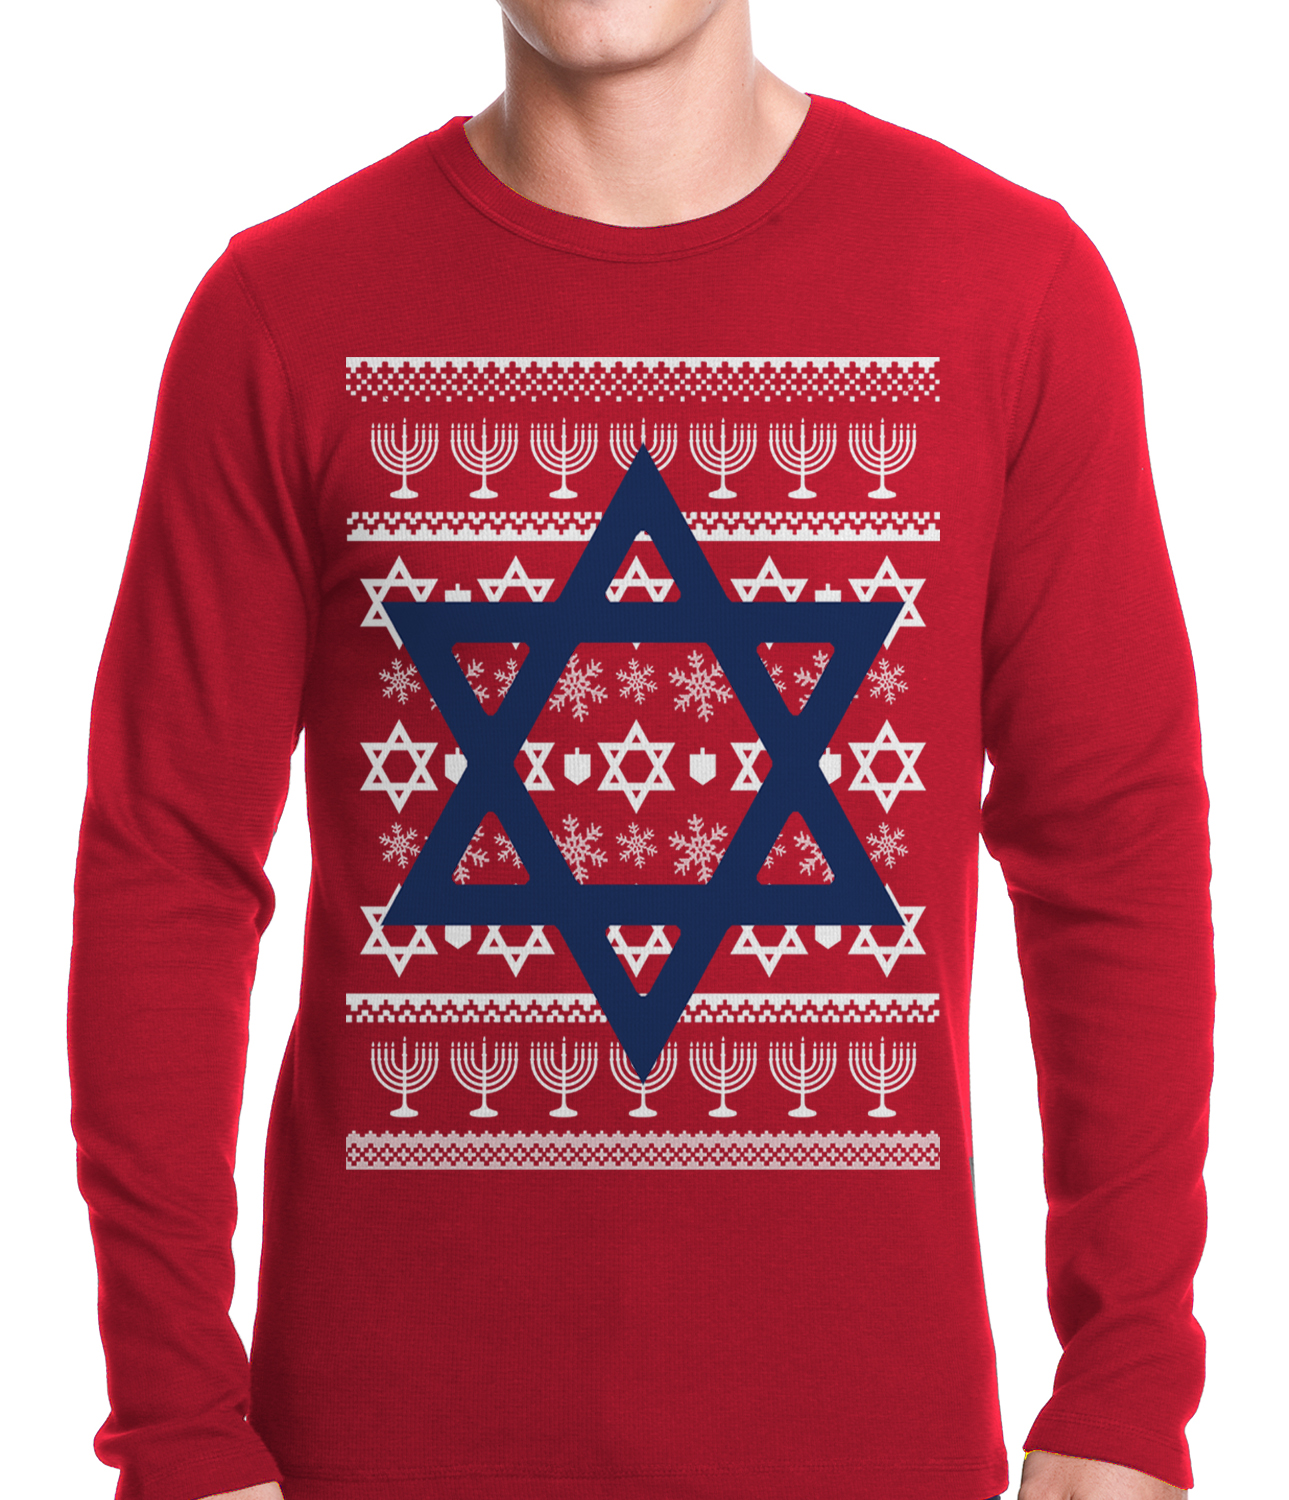 Jewish Star Hanukkah Sweater Thermal Shirt